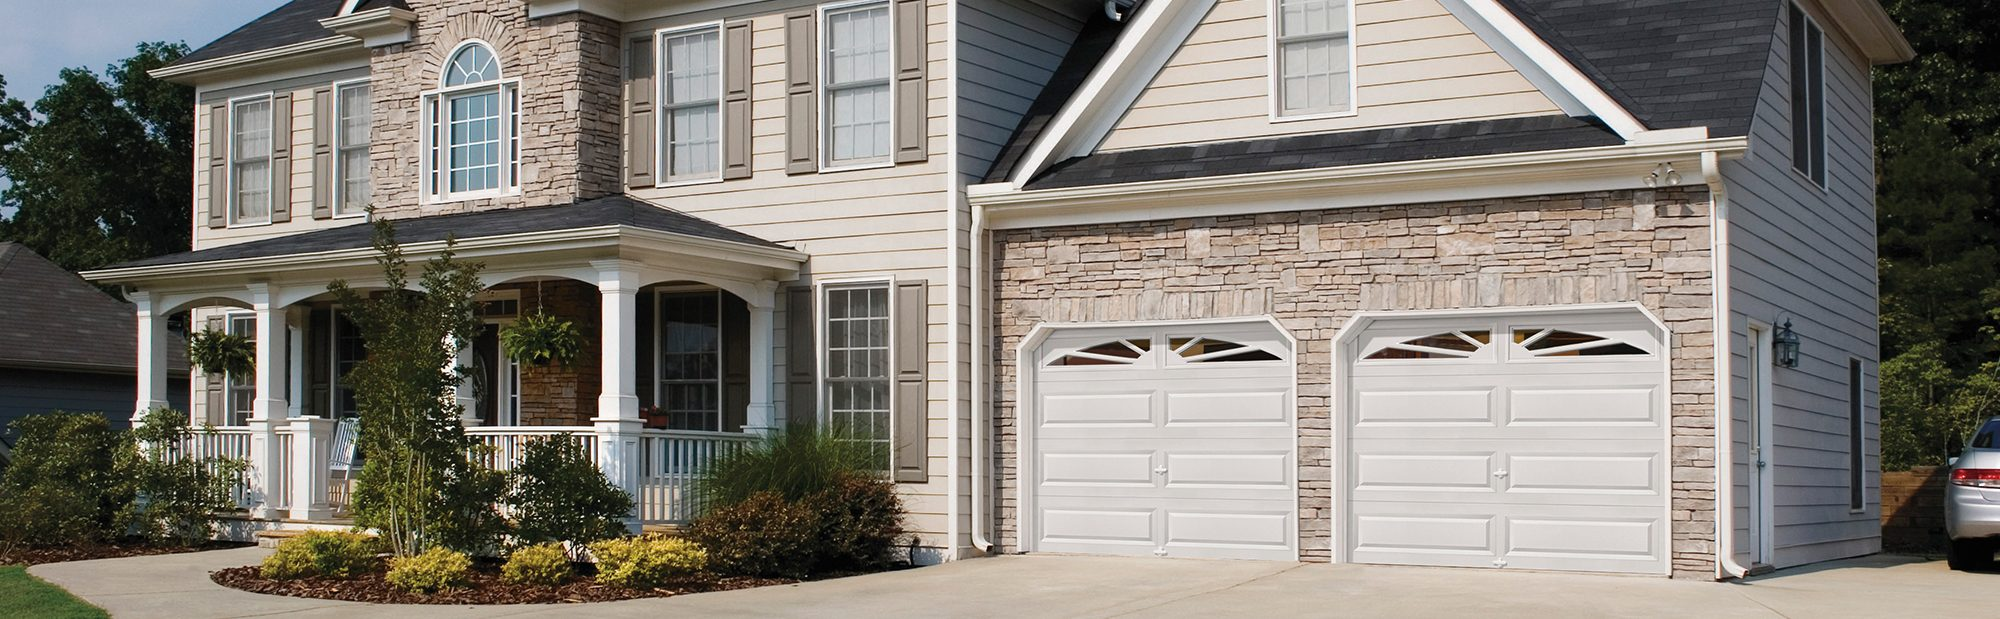 Garage Door Parts Seattle Distribudoors Garage Door Service Greater Seattle Area